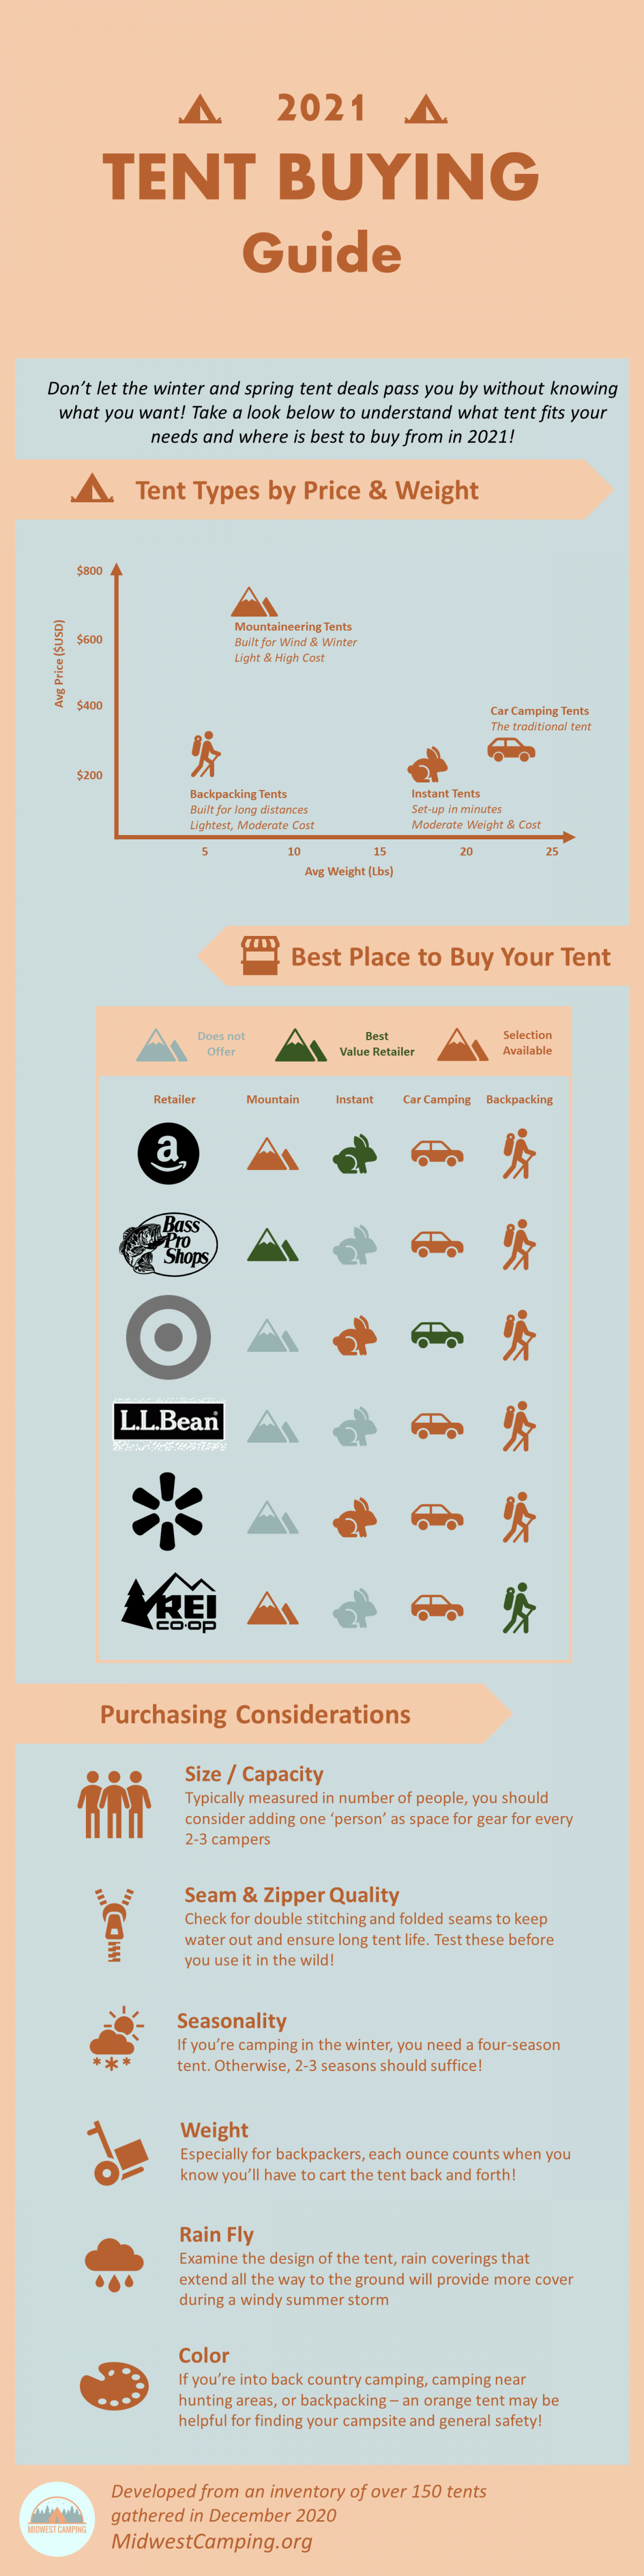 2021 Tent Buying Guide Infographic